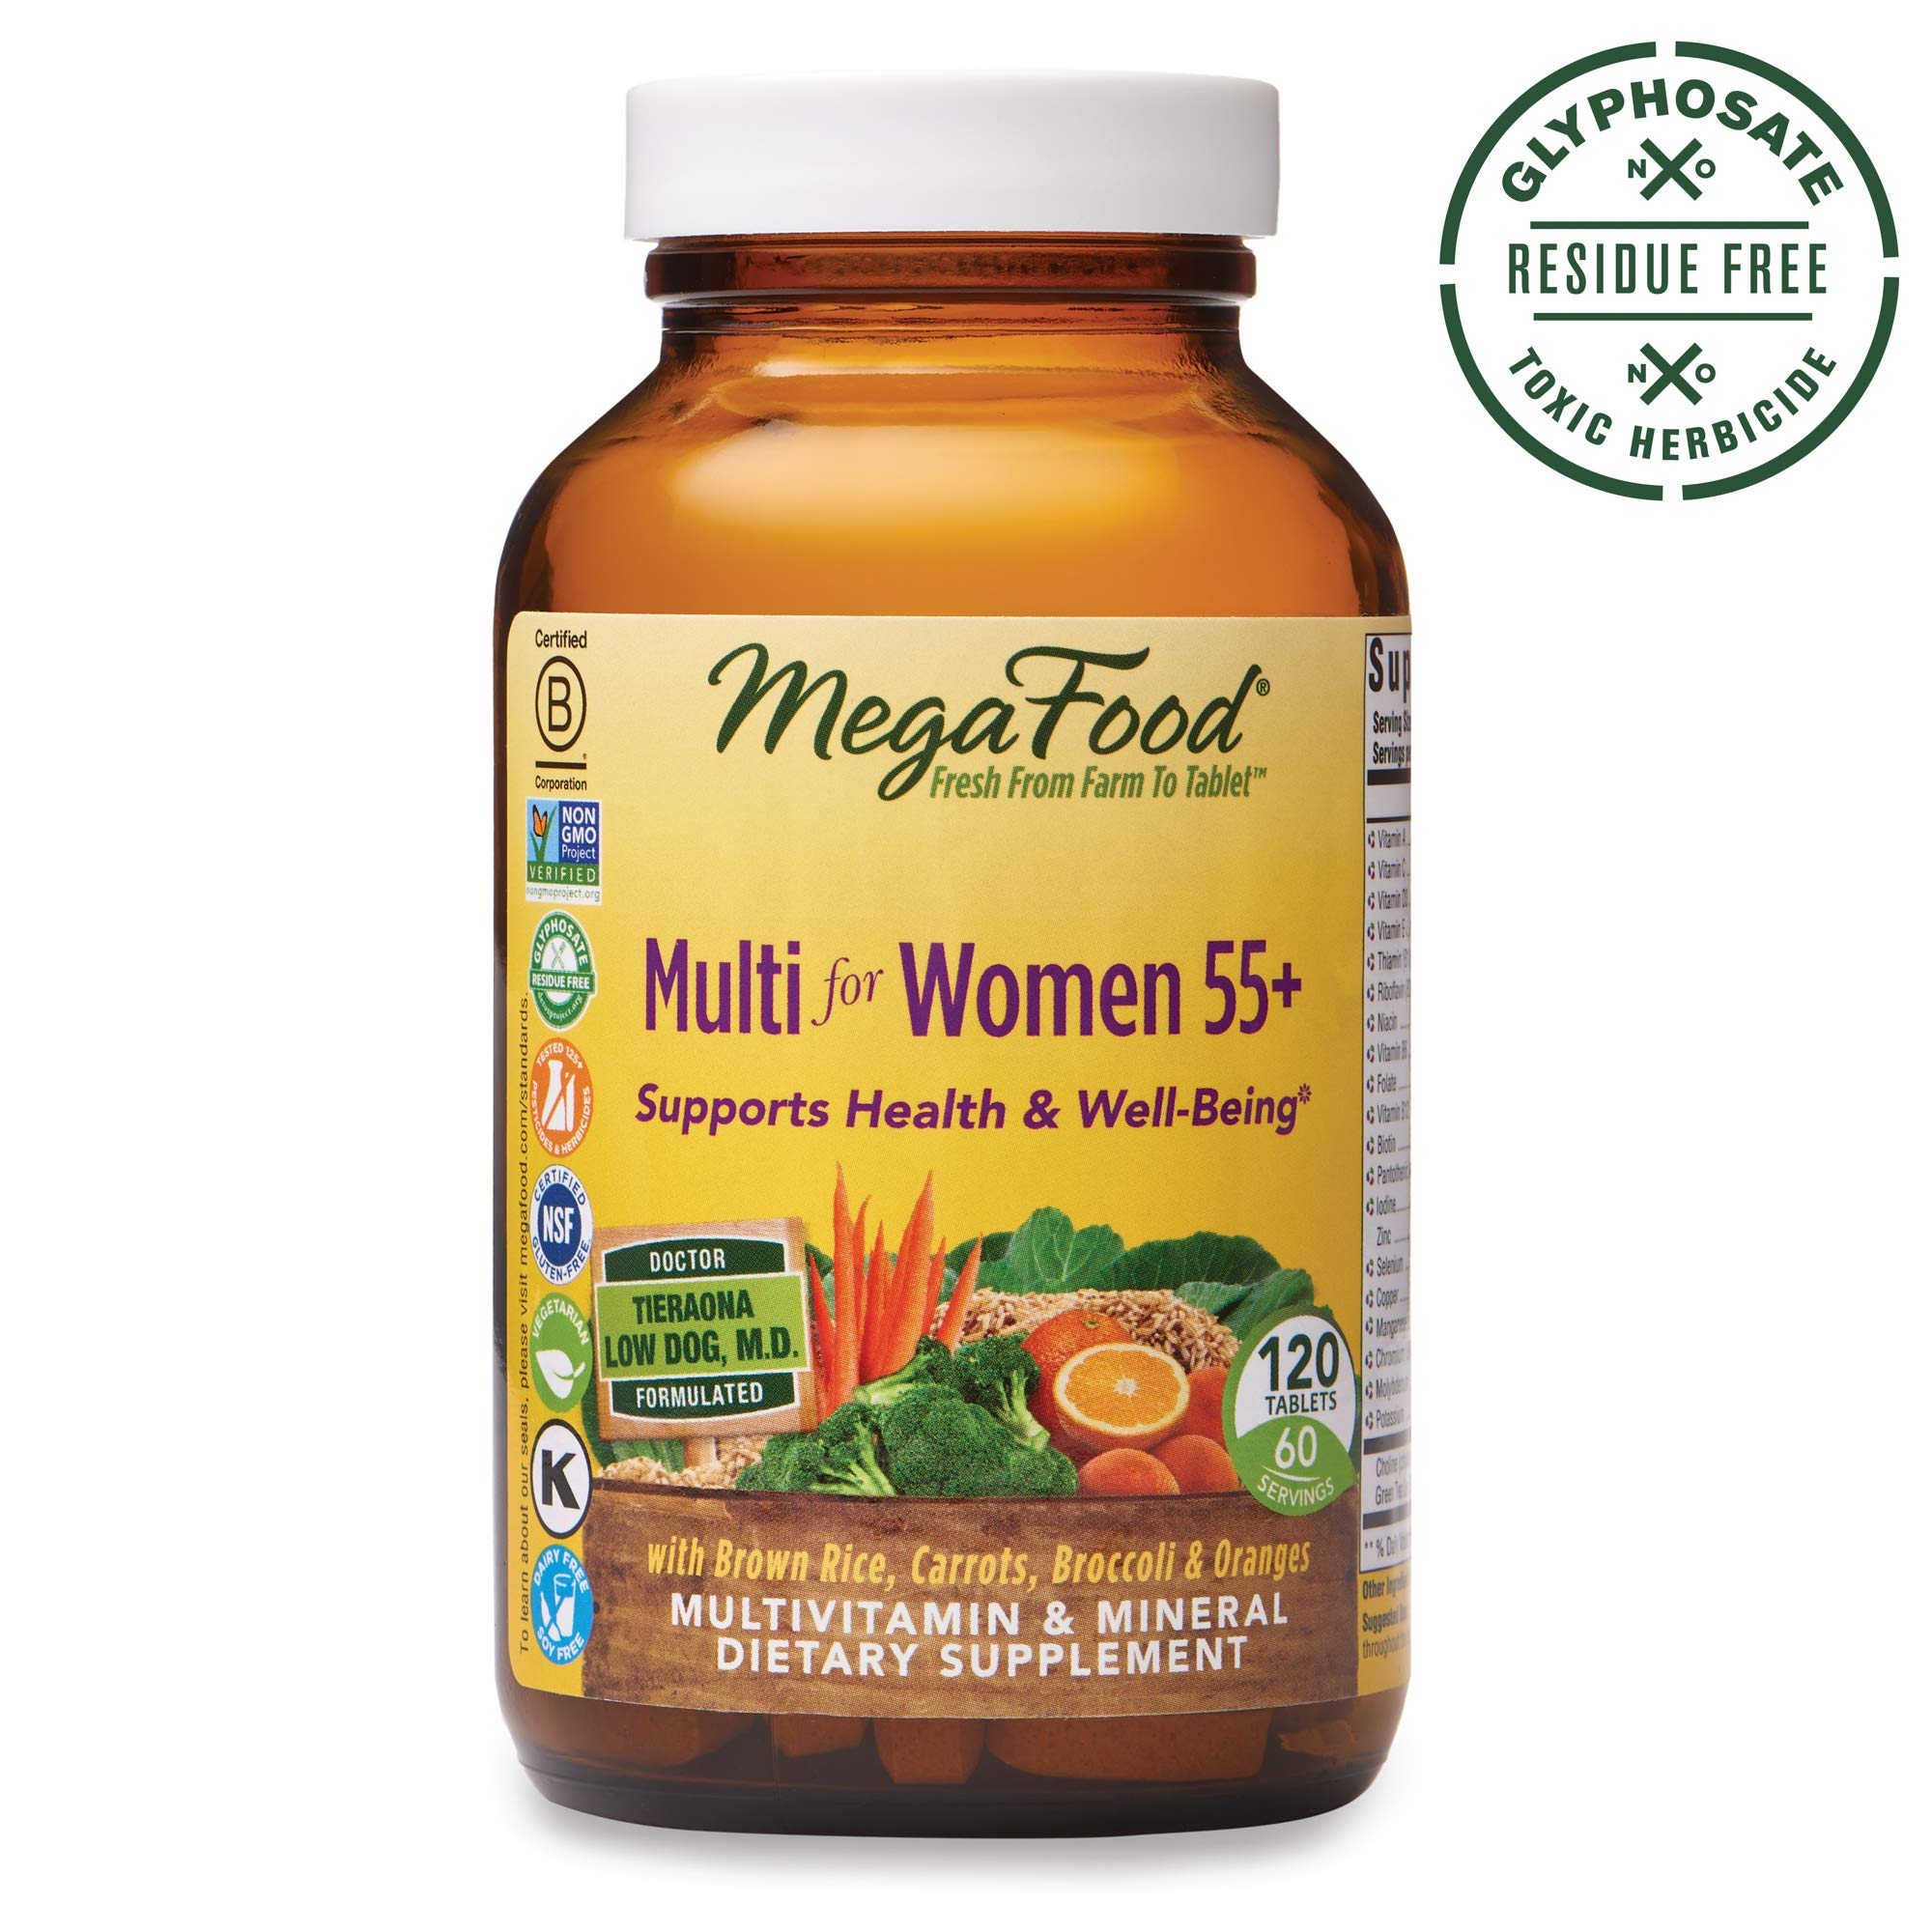 MegaFood, Multi for Women 55+, Supports Optimal Health and Wellbeing, Multivitamin and Mineral Dietary Supplement, Gluten Free, Vegetarian, 120 tablets (60 servings) by MegaFood